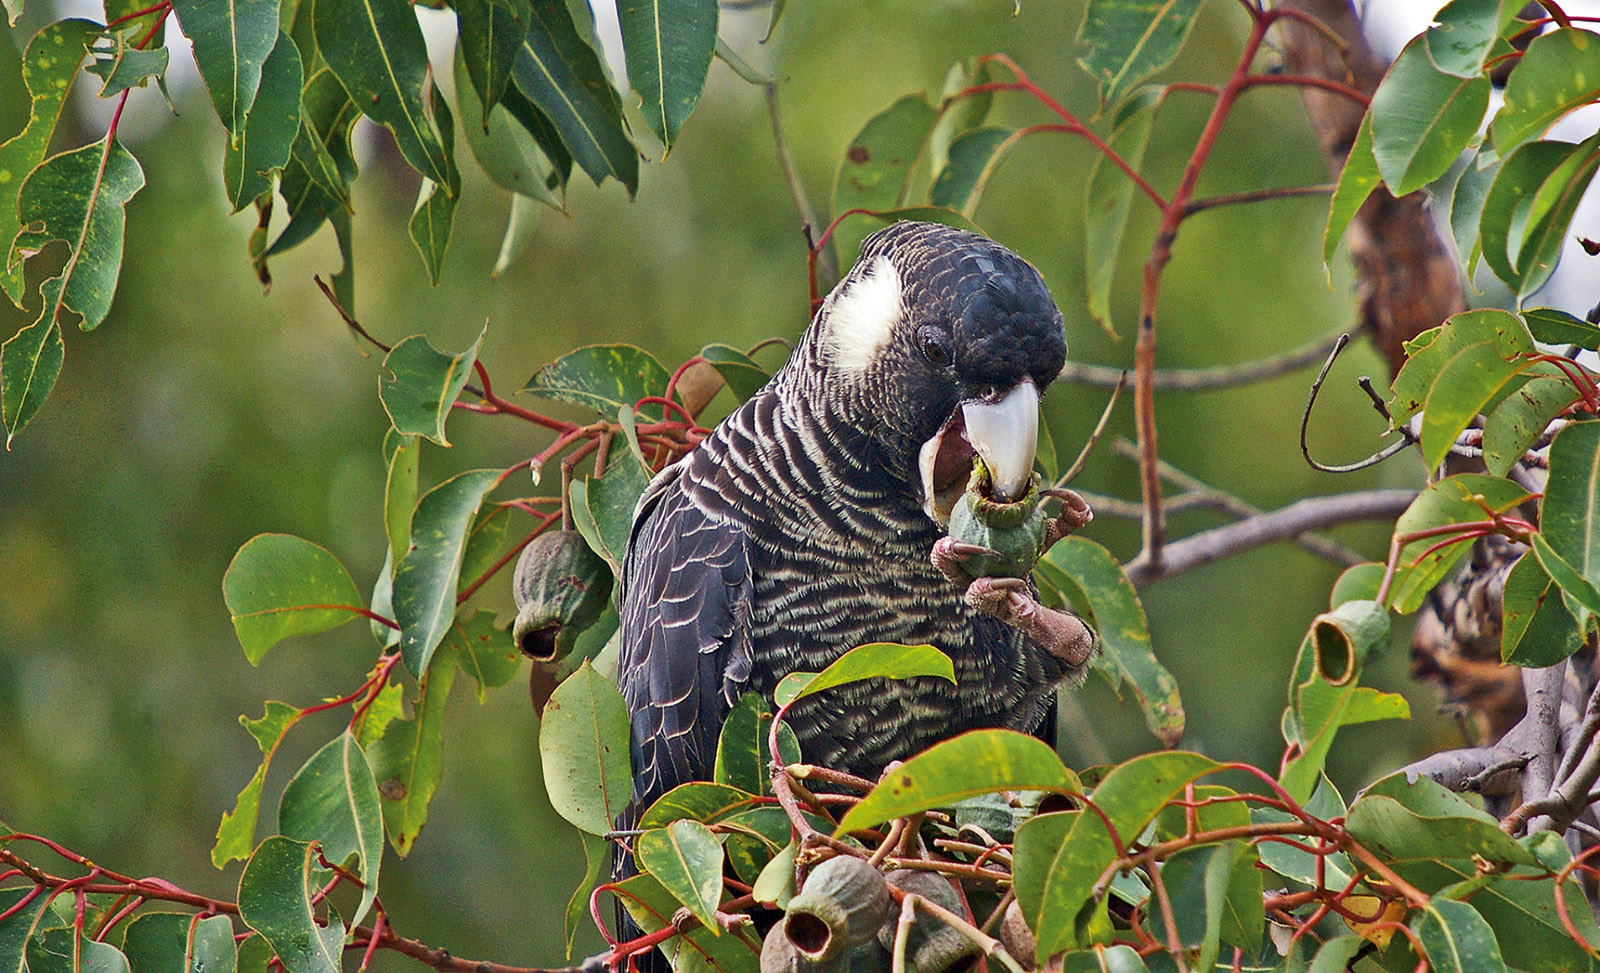 A Baudin's black cockatoo, whose main food is marri seeds; its elongated mandible is specially adapted to scoop the seeds out of marri nuts